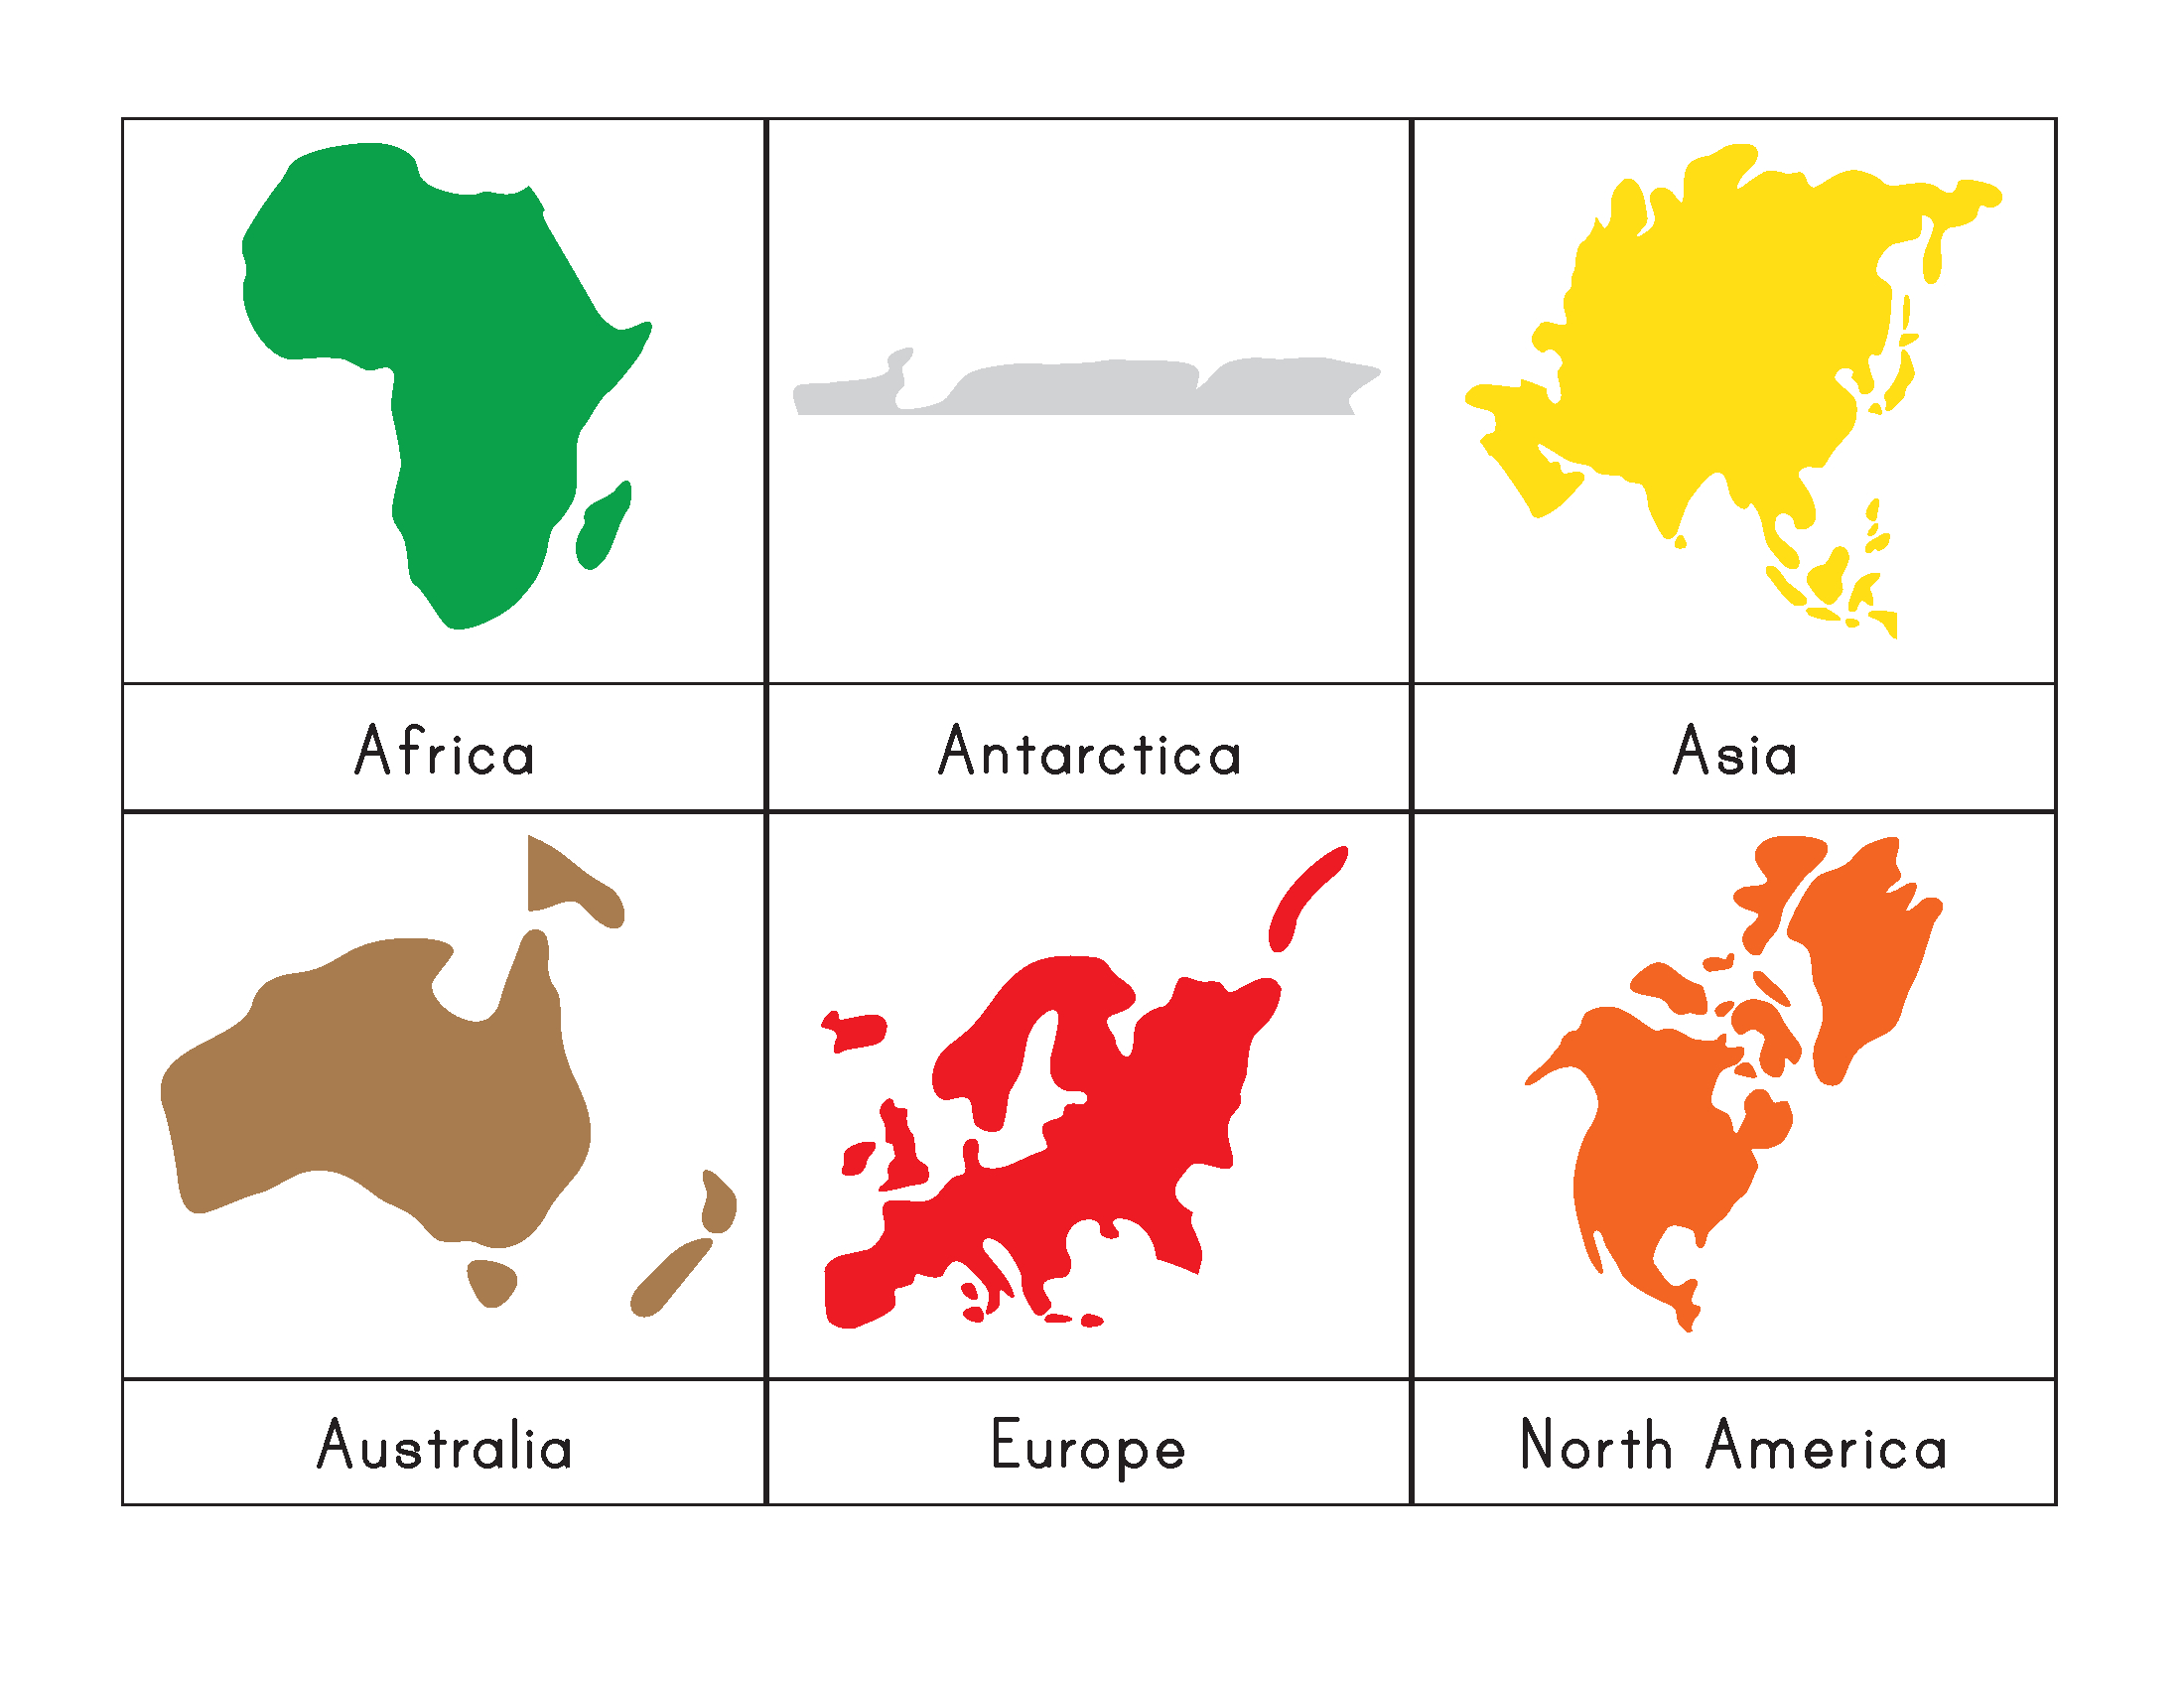 7 Continents Coloring Page | Free Download Best 7 Continents - 7 Continents Printable Puzzle